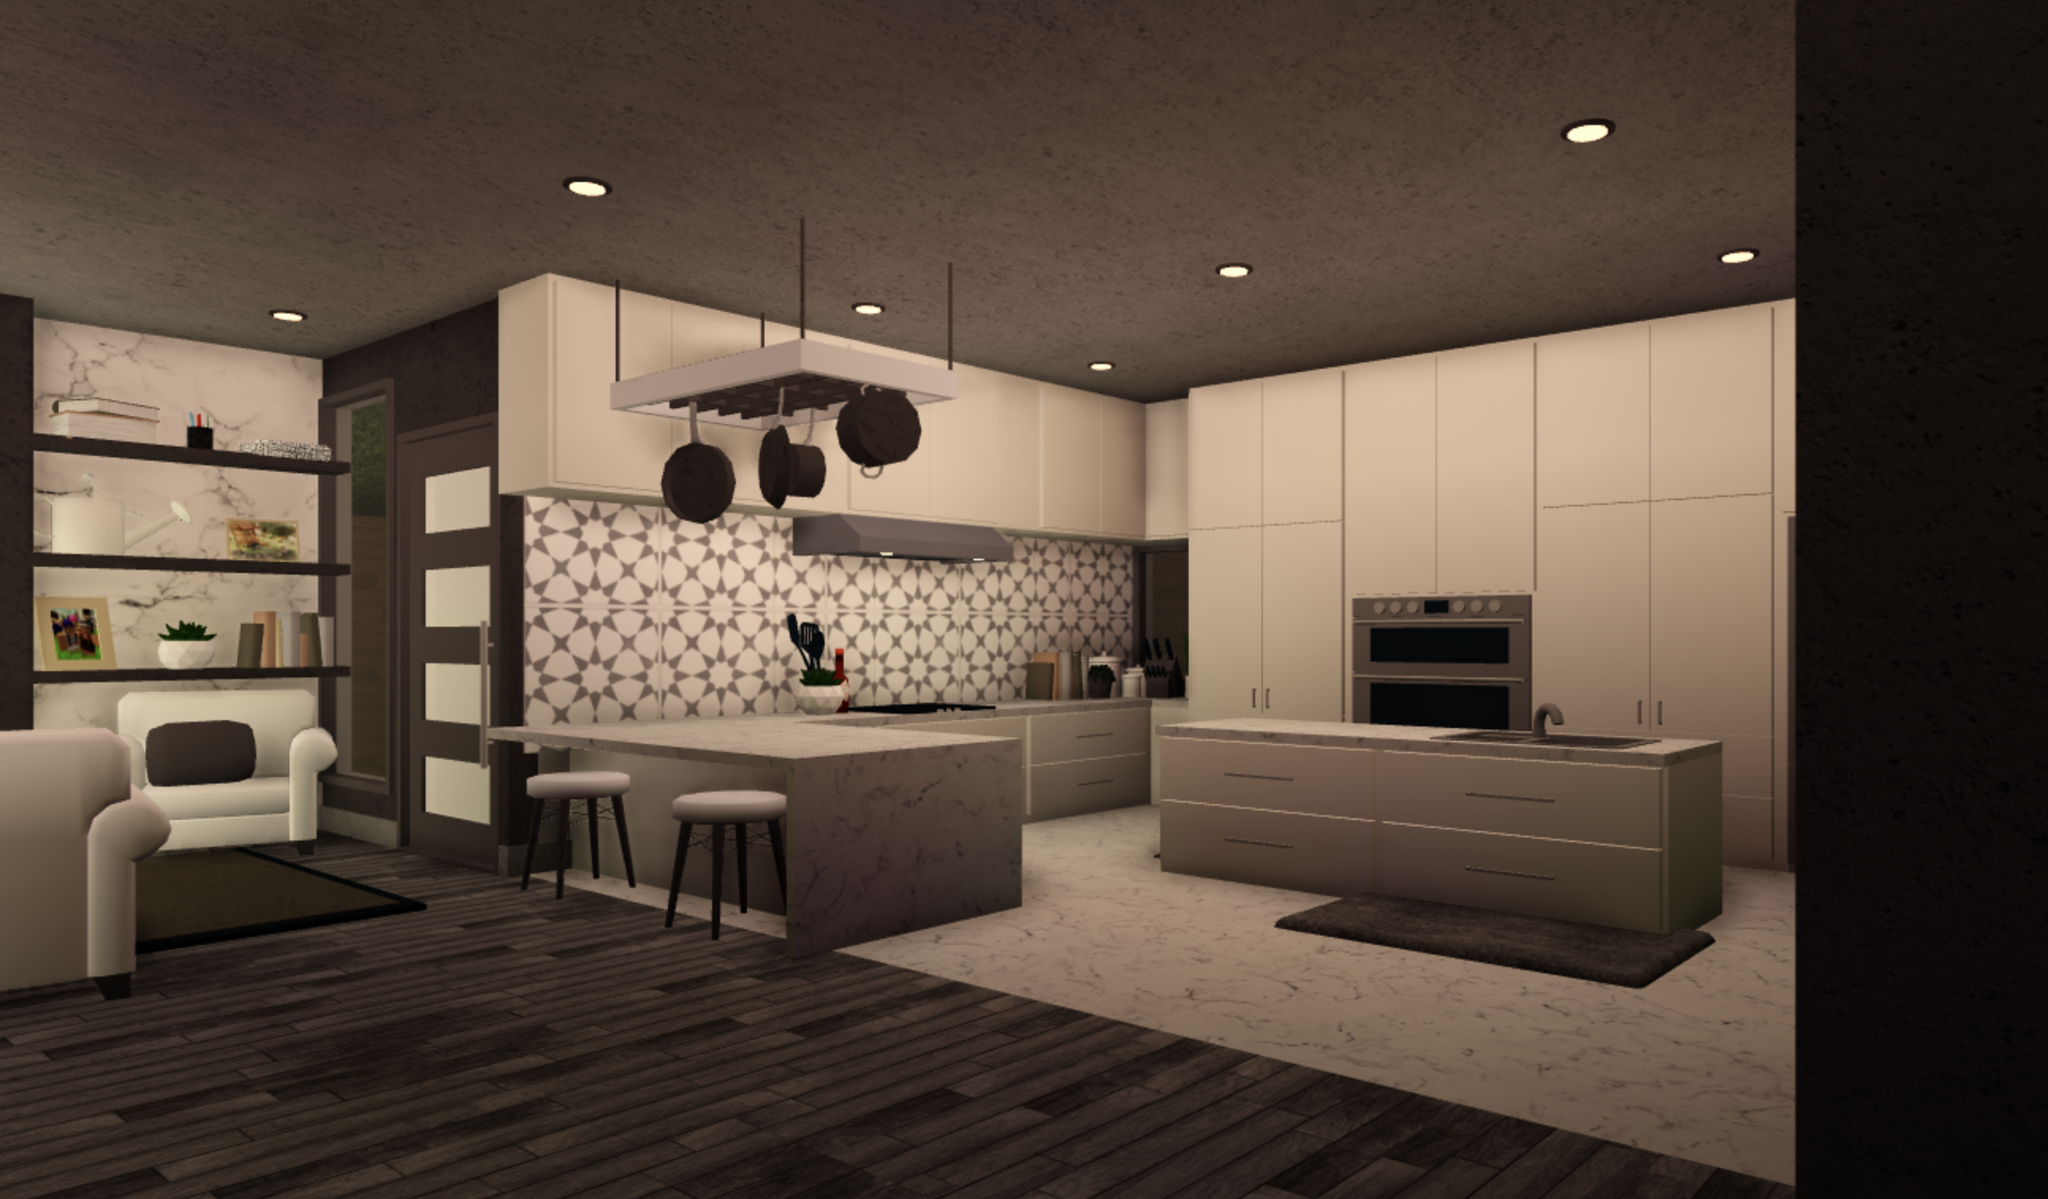 Queen Cre8tive On Twitter Modern Yet Cozy Kitchen Favorite Kitchen I Ve Ever Done And Honestly I Got The Backsplash Tile From So Just Know That I Don T Claim It Rbx Coeptus Froggyhopz Rblx